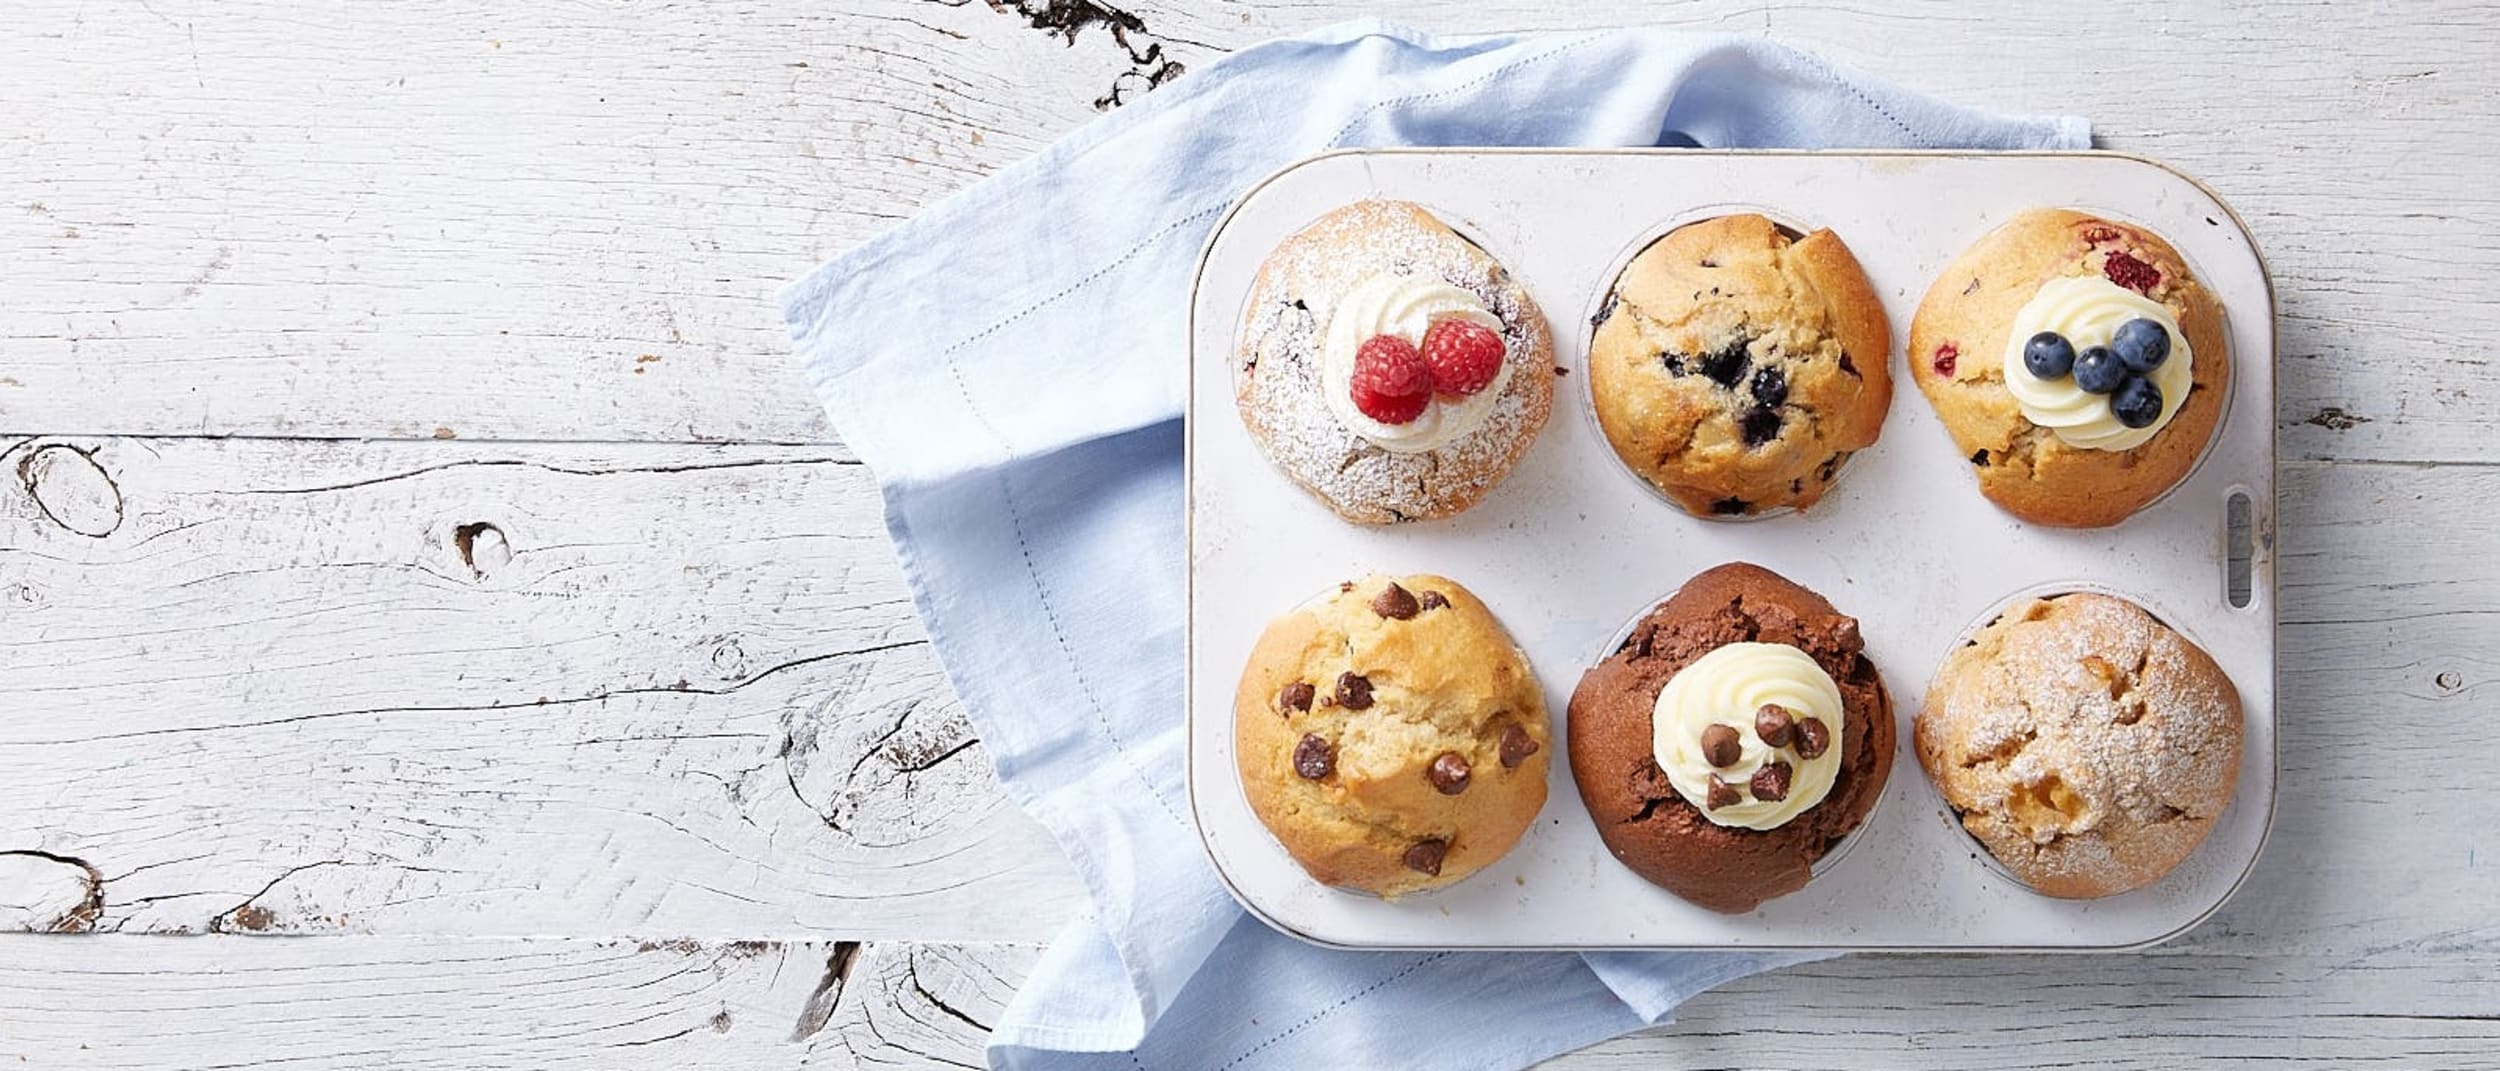 Exclusive: 4 muffins for $10 at Muffin Break